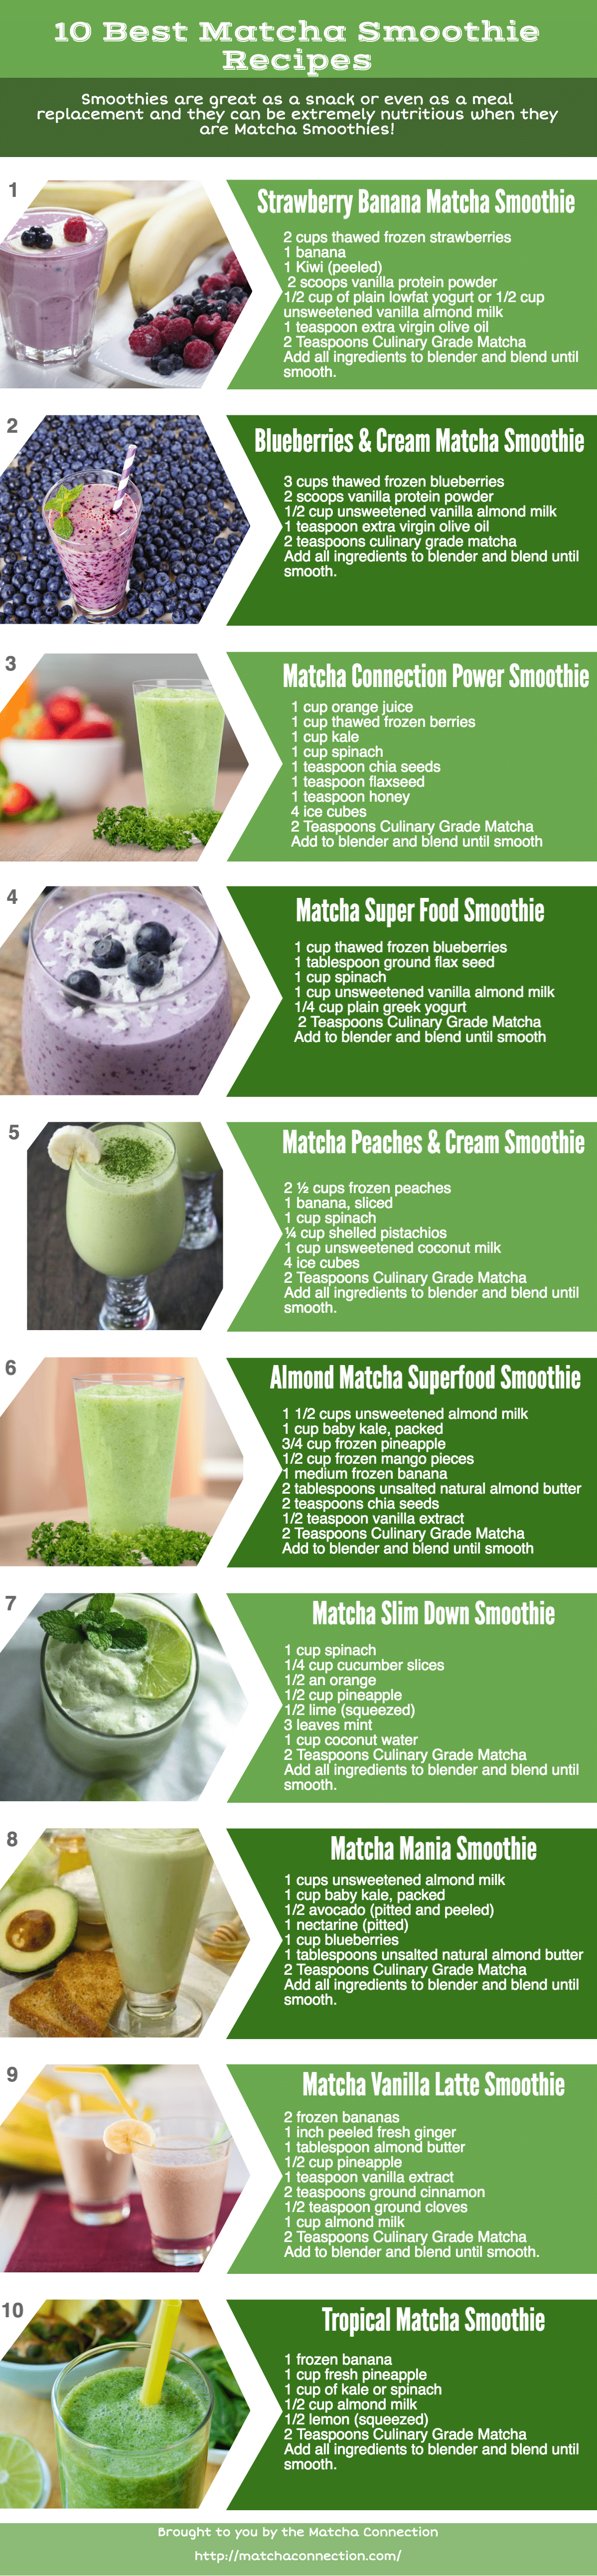 Top 10 Best Matcha Green Tea Smoothie Recipes